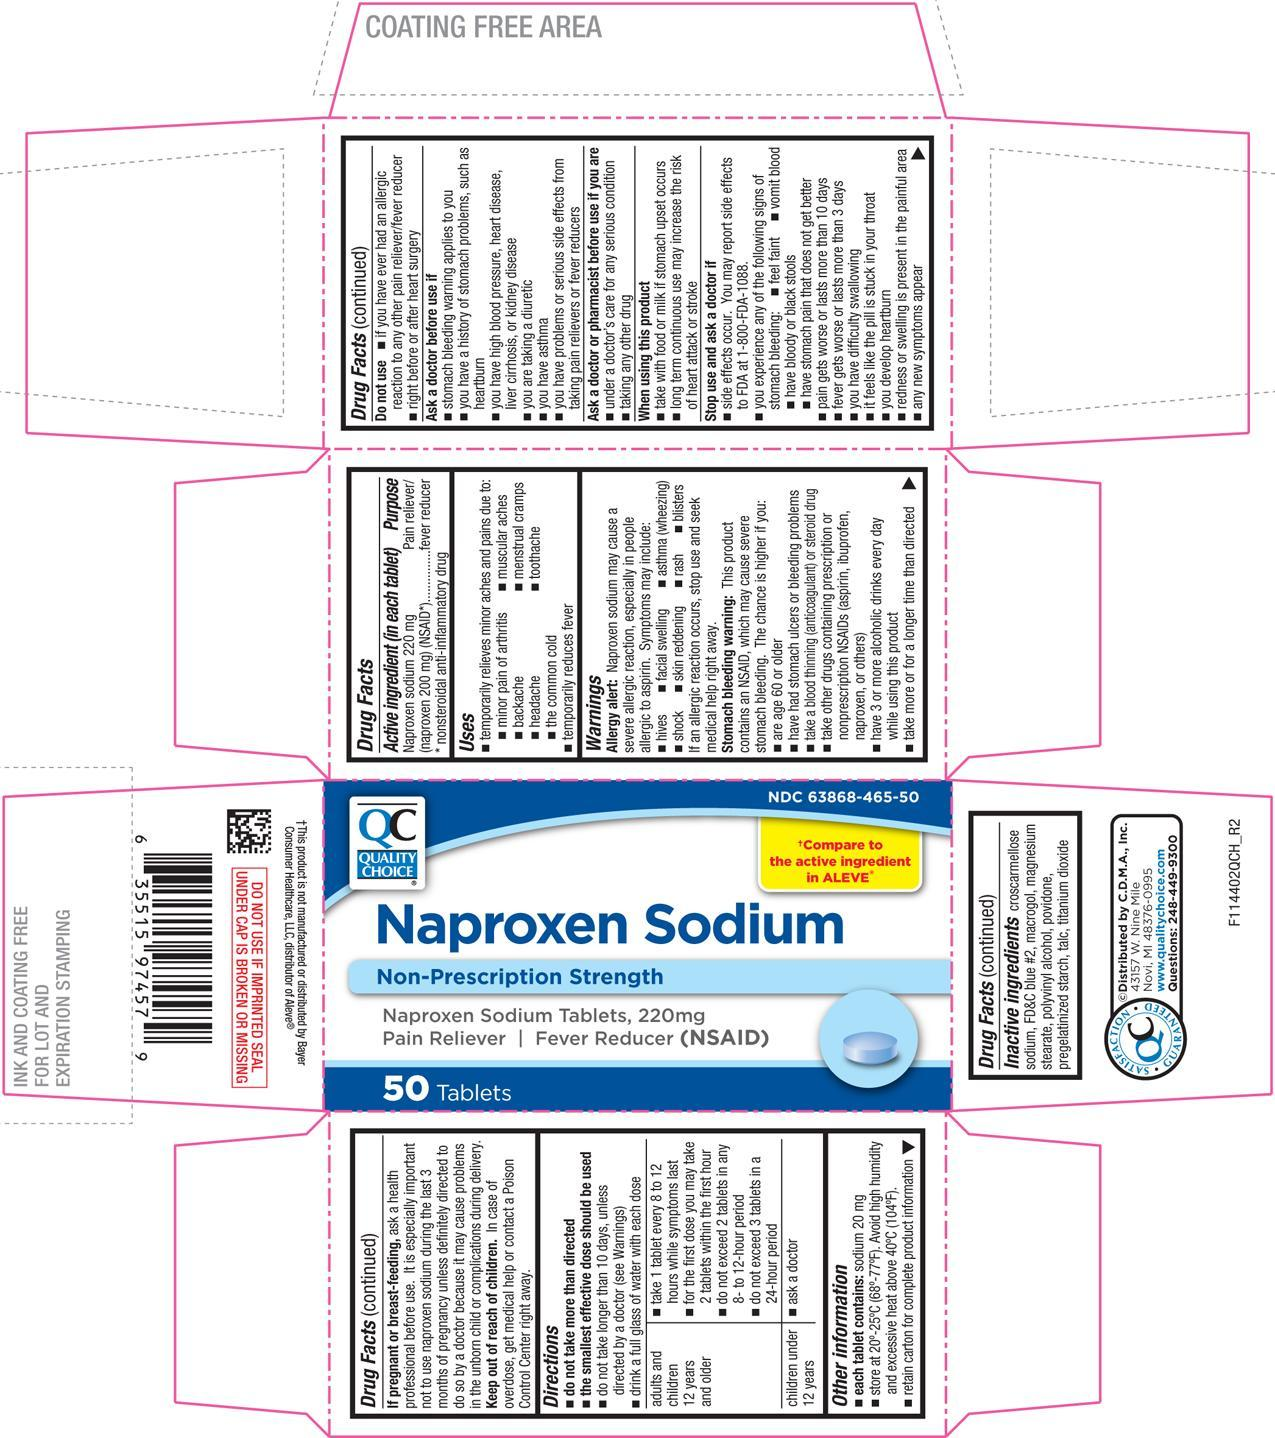 Naproxen Sodium Tablet, Coated [Chain Drug Marketing Association]